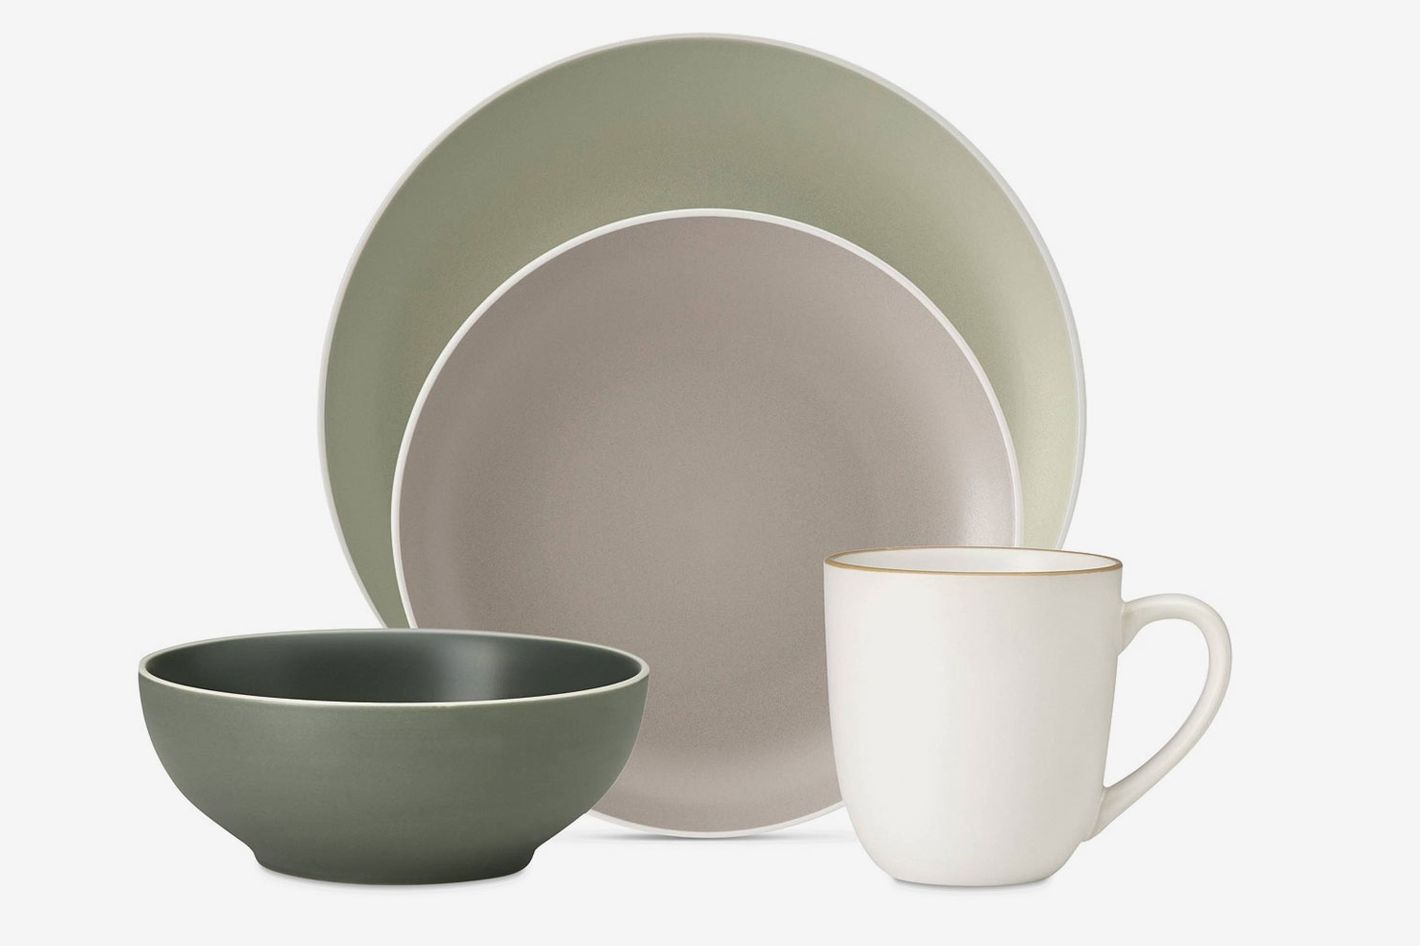 Pieces of ceramic dinnerware from Dansk u2014 The Strategistu0027s Deal of the Day is this dinnerware & Dansk Ceramic Dinnerware on Sale at Macyu0027s 2018